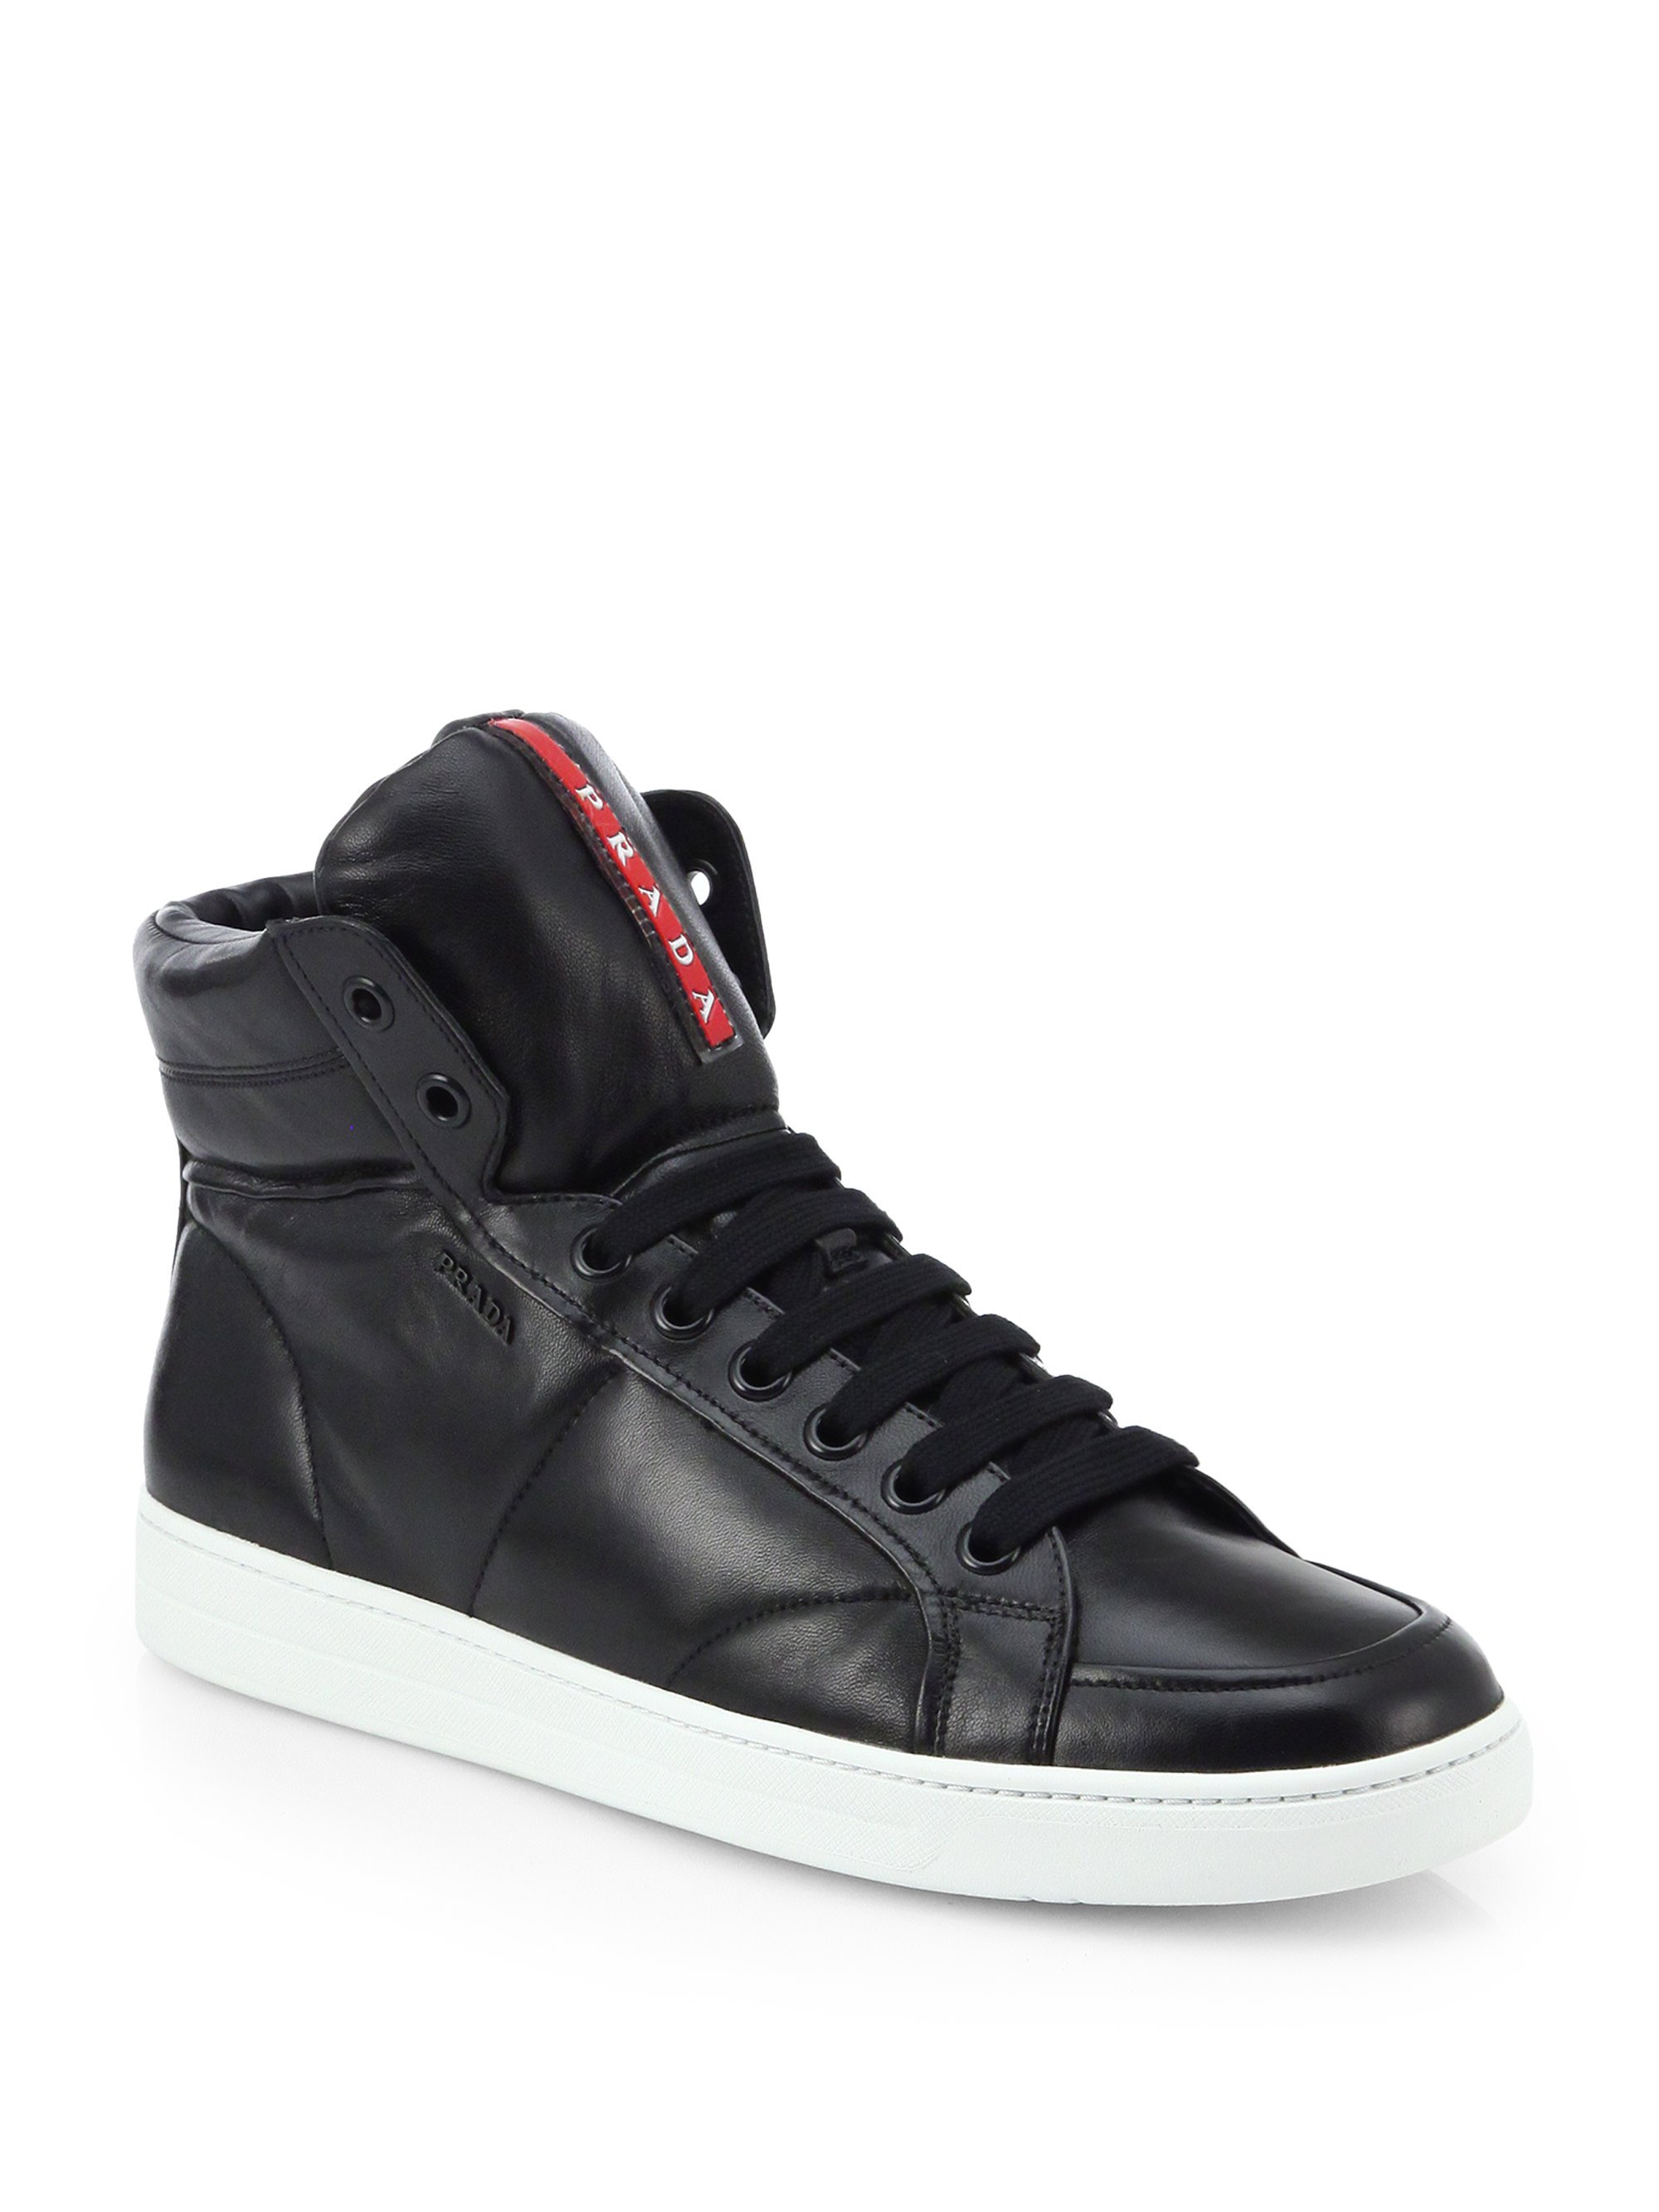 lyst prada leather high top sneakers in black for men. Black Bedroom Furniture Sets. Home Design Ideas